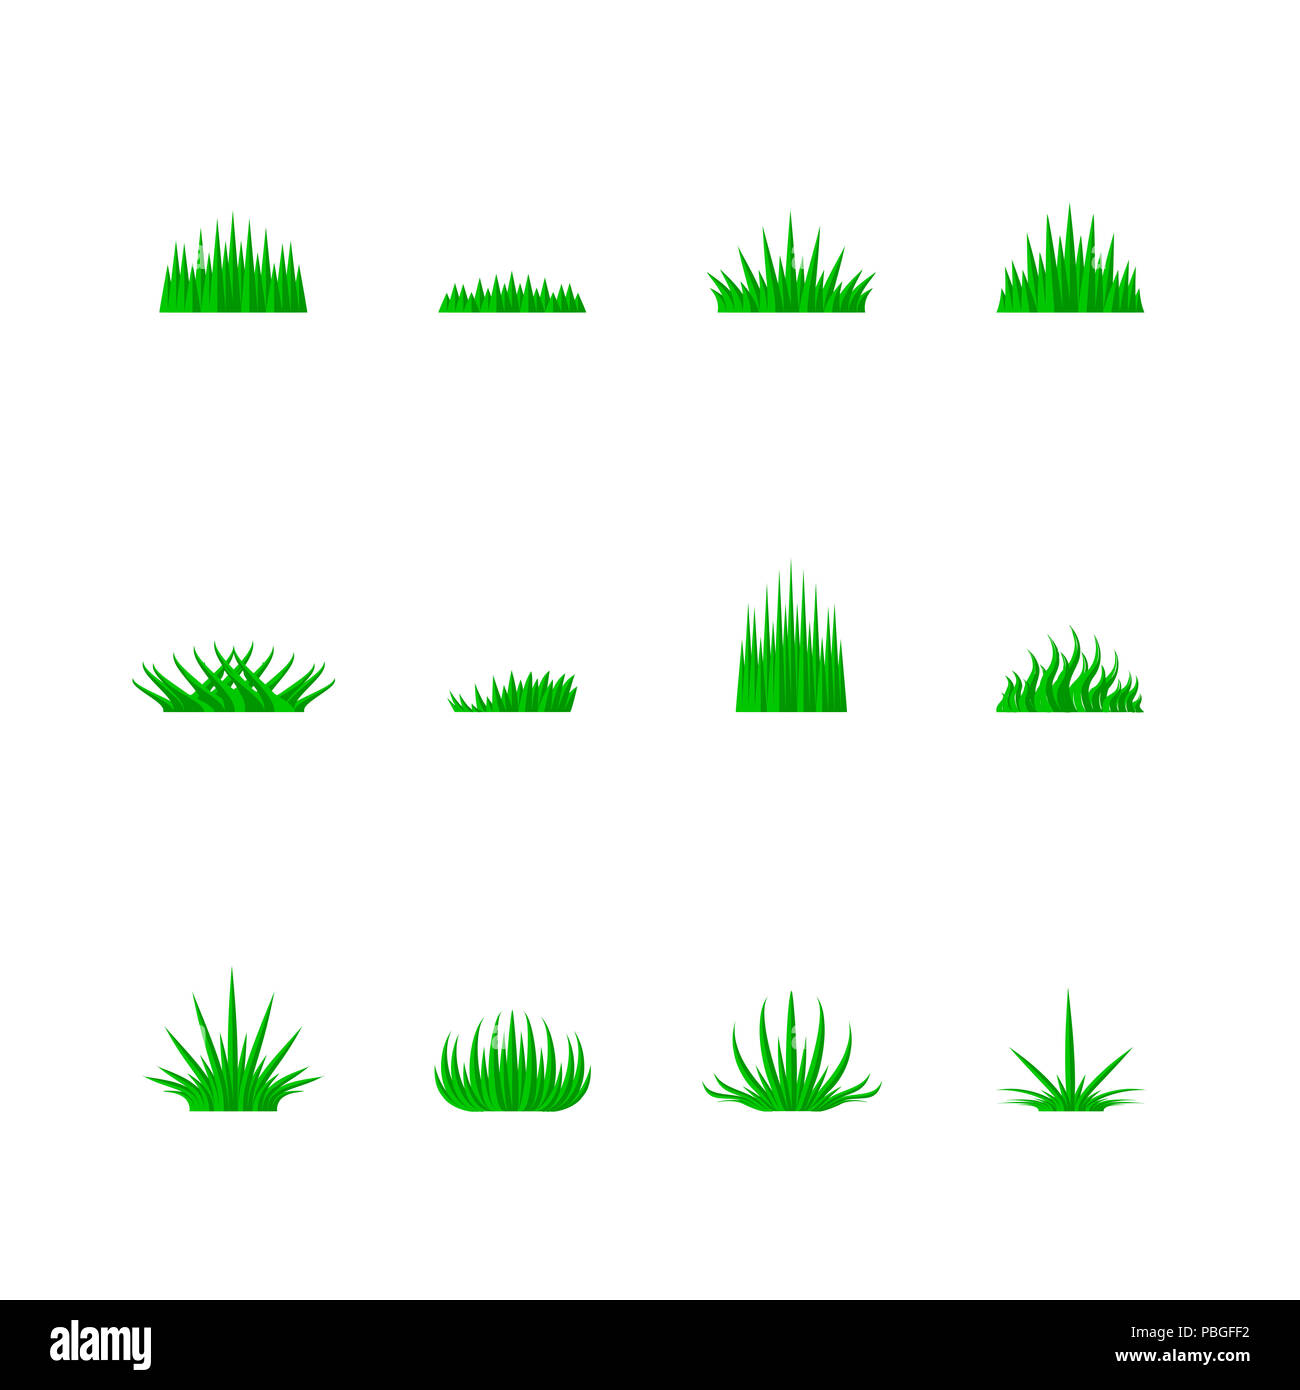 Green Grass of Different Shapes, Nature Icon Set. Grass Bunchs Set. Design Elements